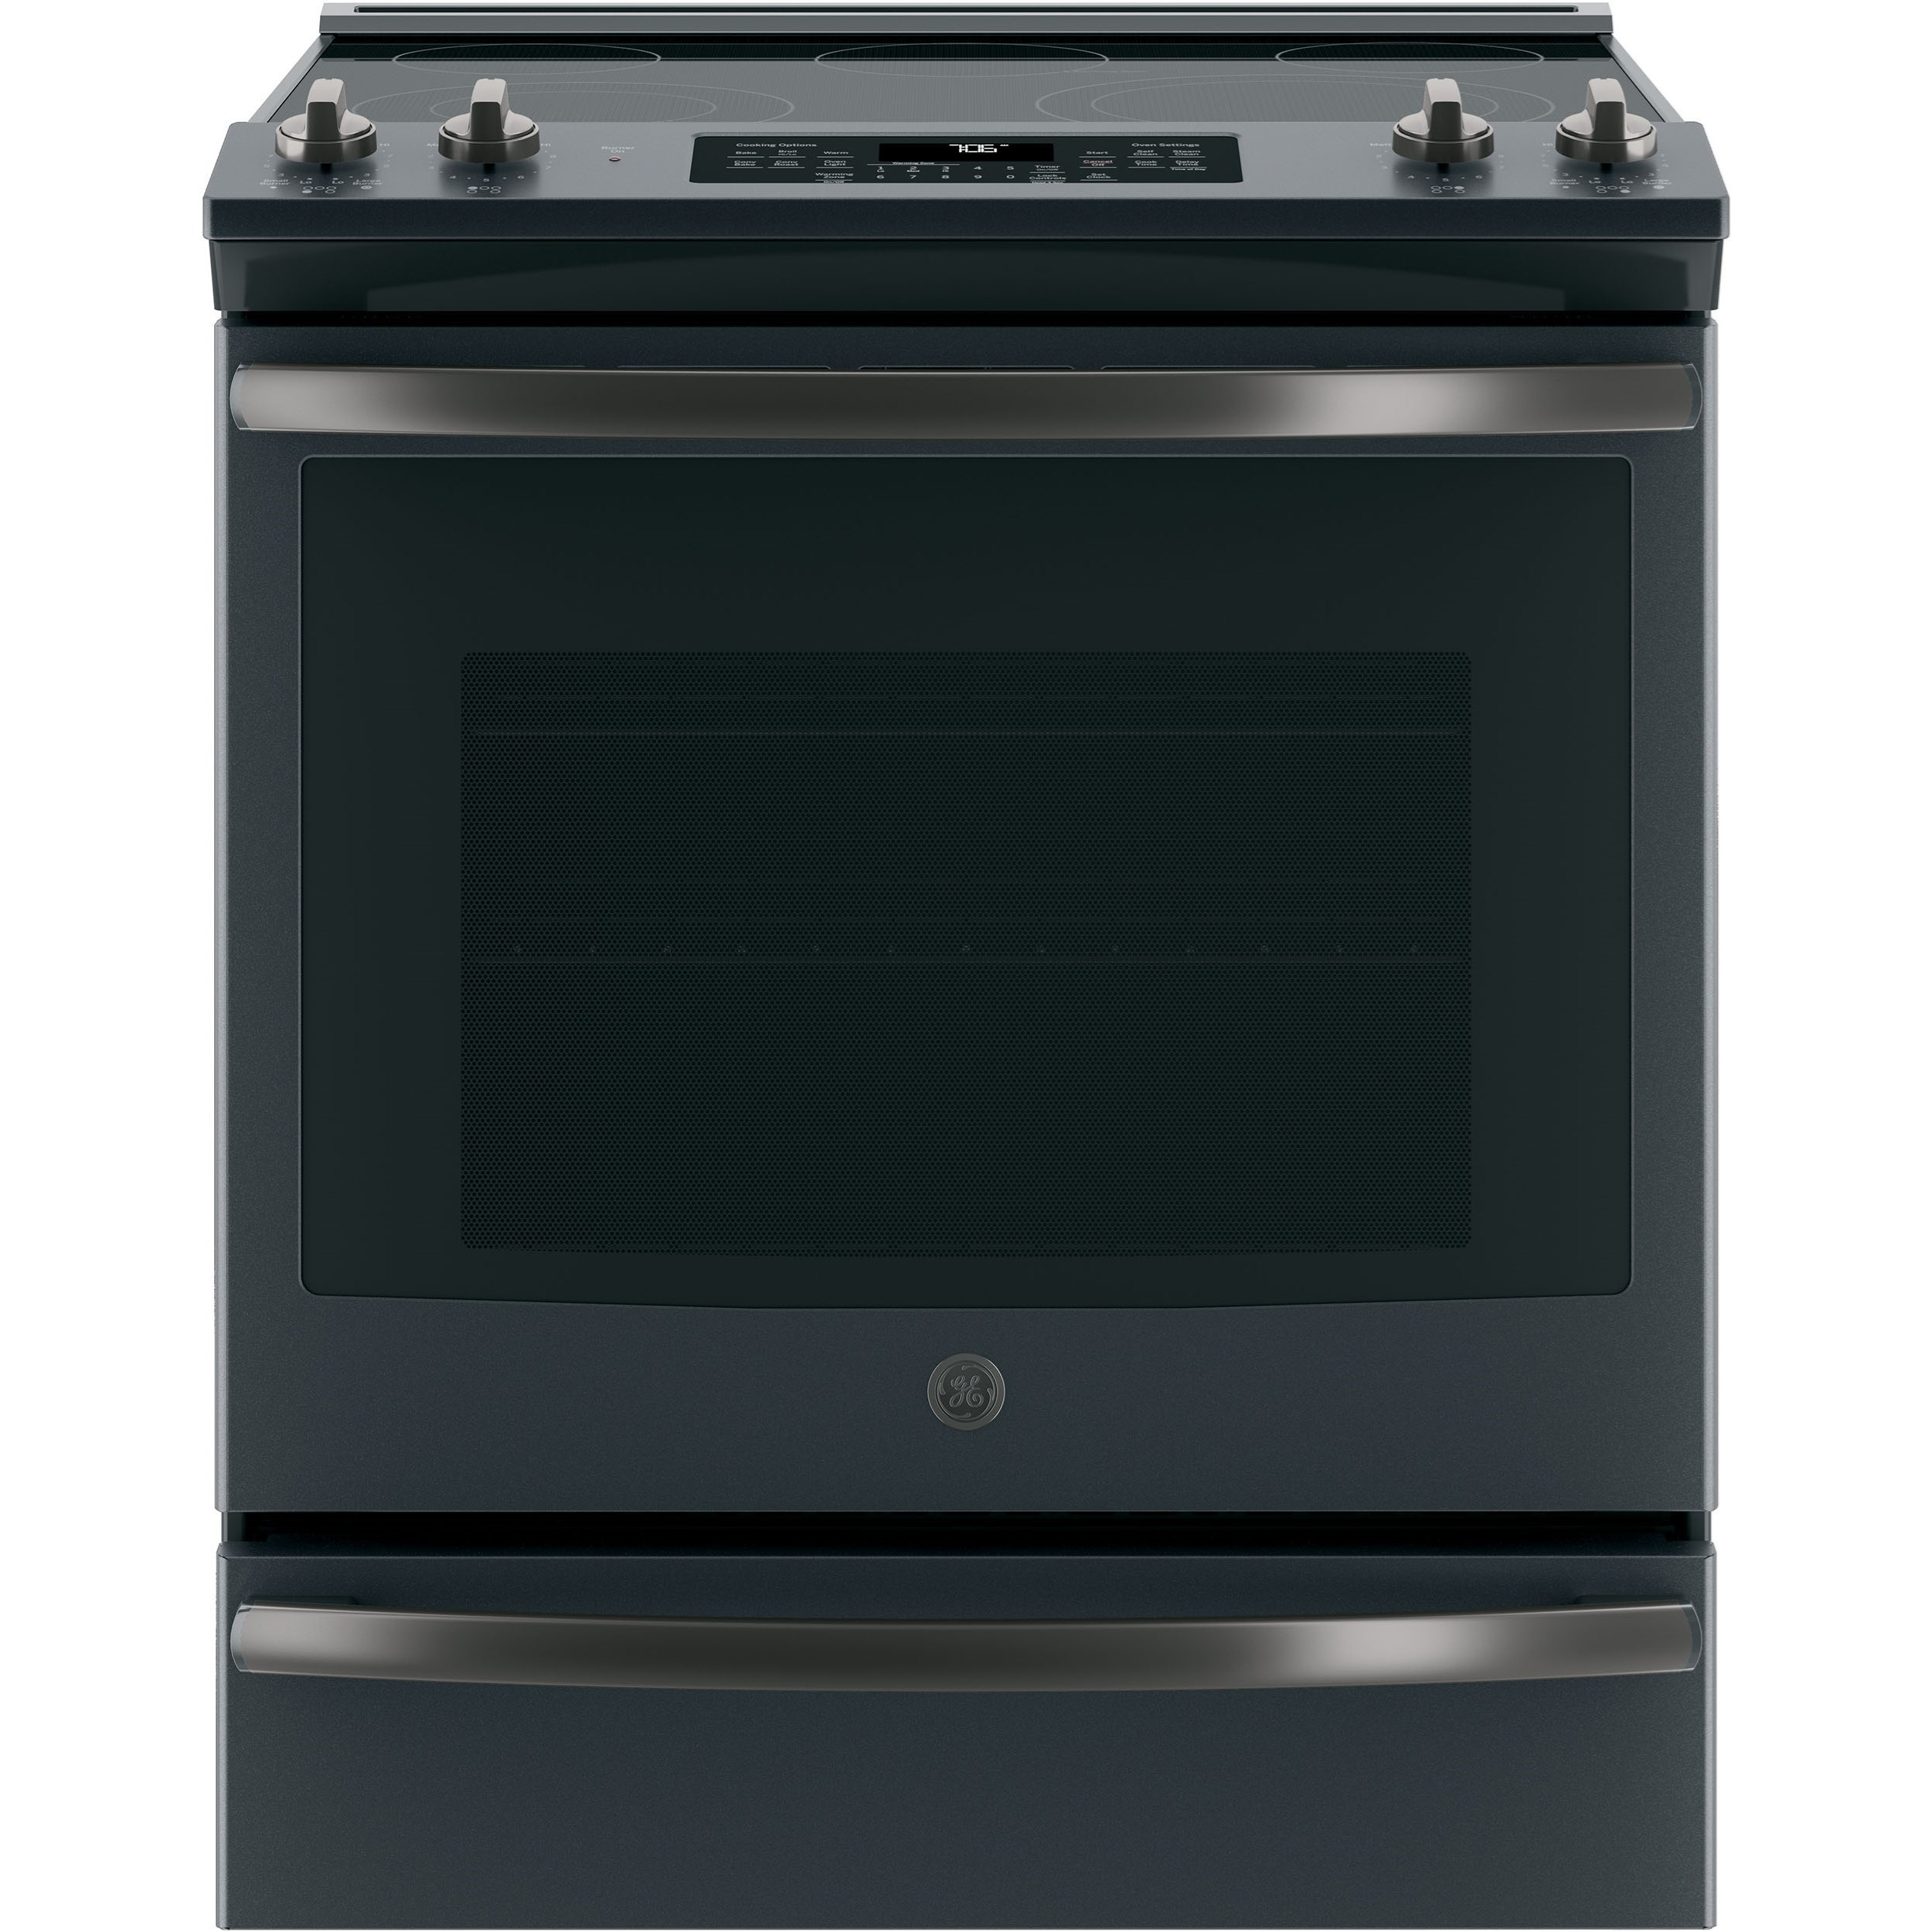 "GE Electric Ranges 5.3 Cu. Ft. 30"" Slide-In Electric Range by GE Appliances at VanDrie Home Furnishings"